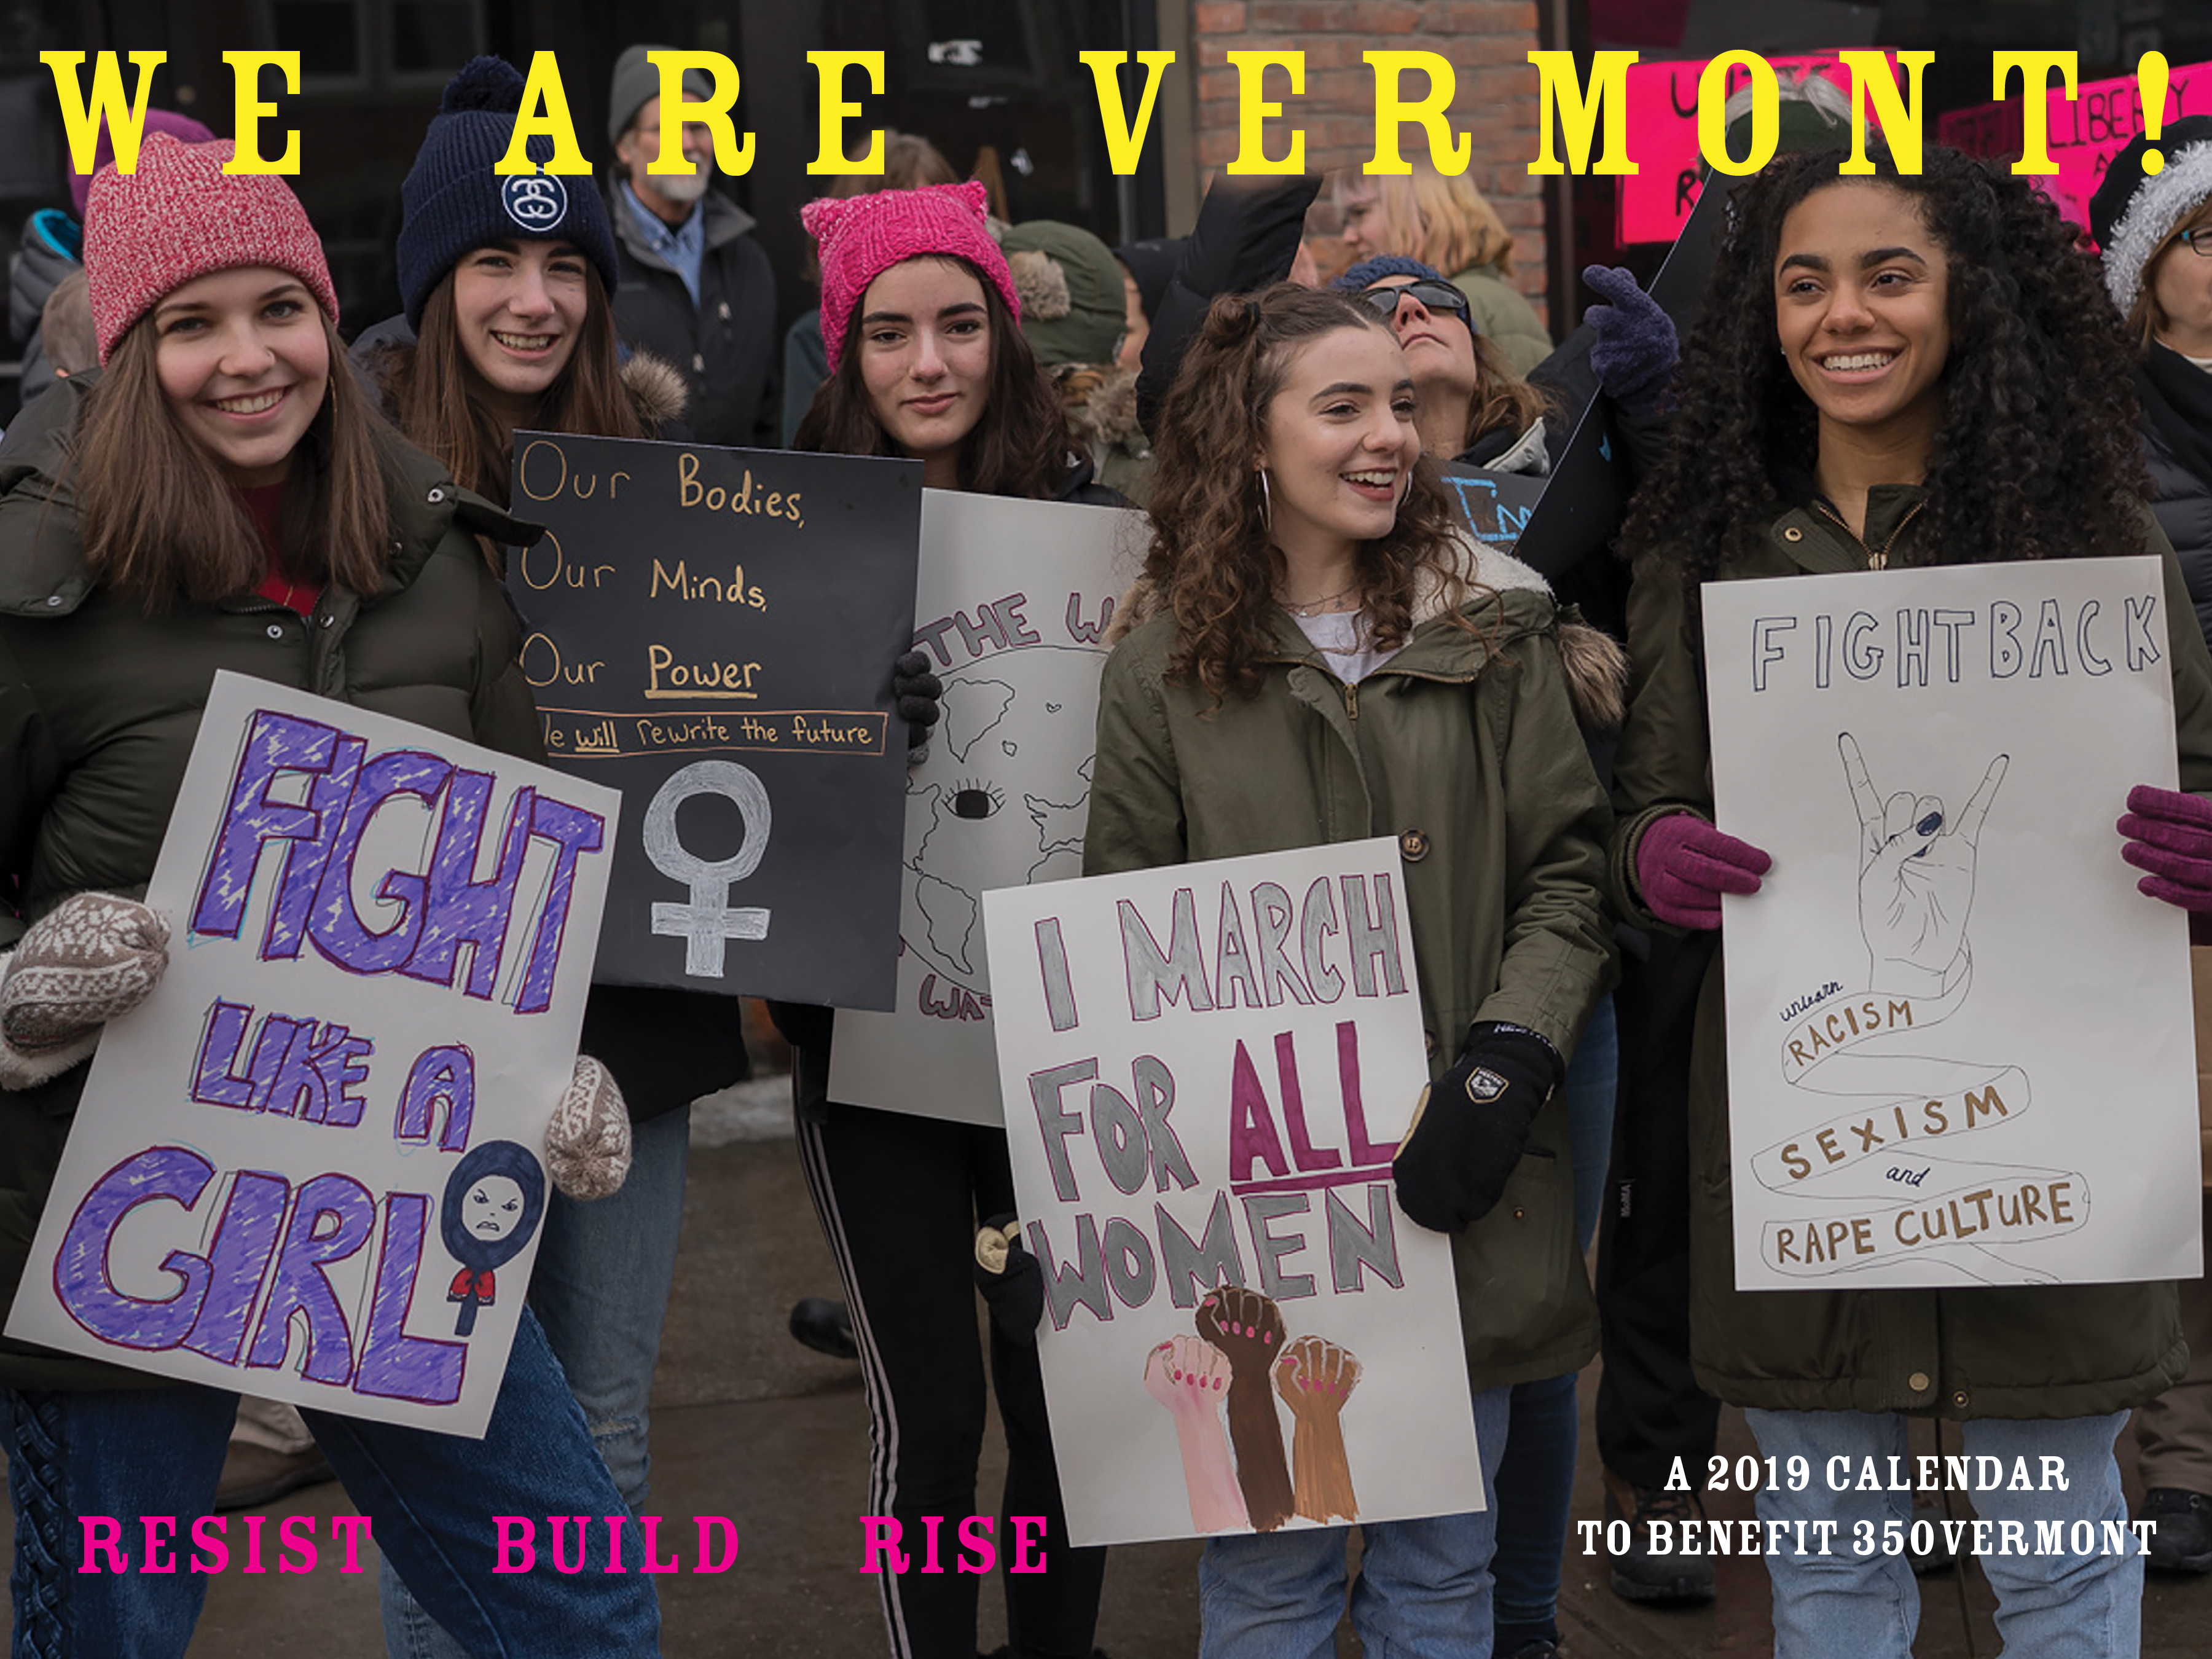 We Are Vermont: Resist, Build, Rise